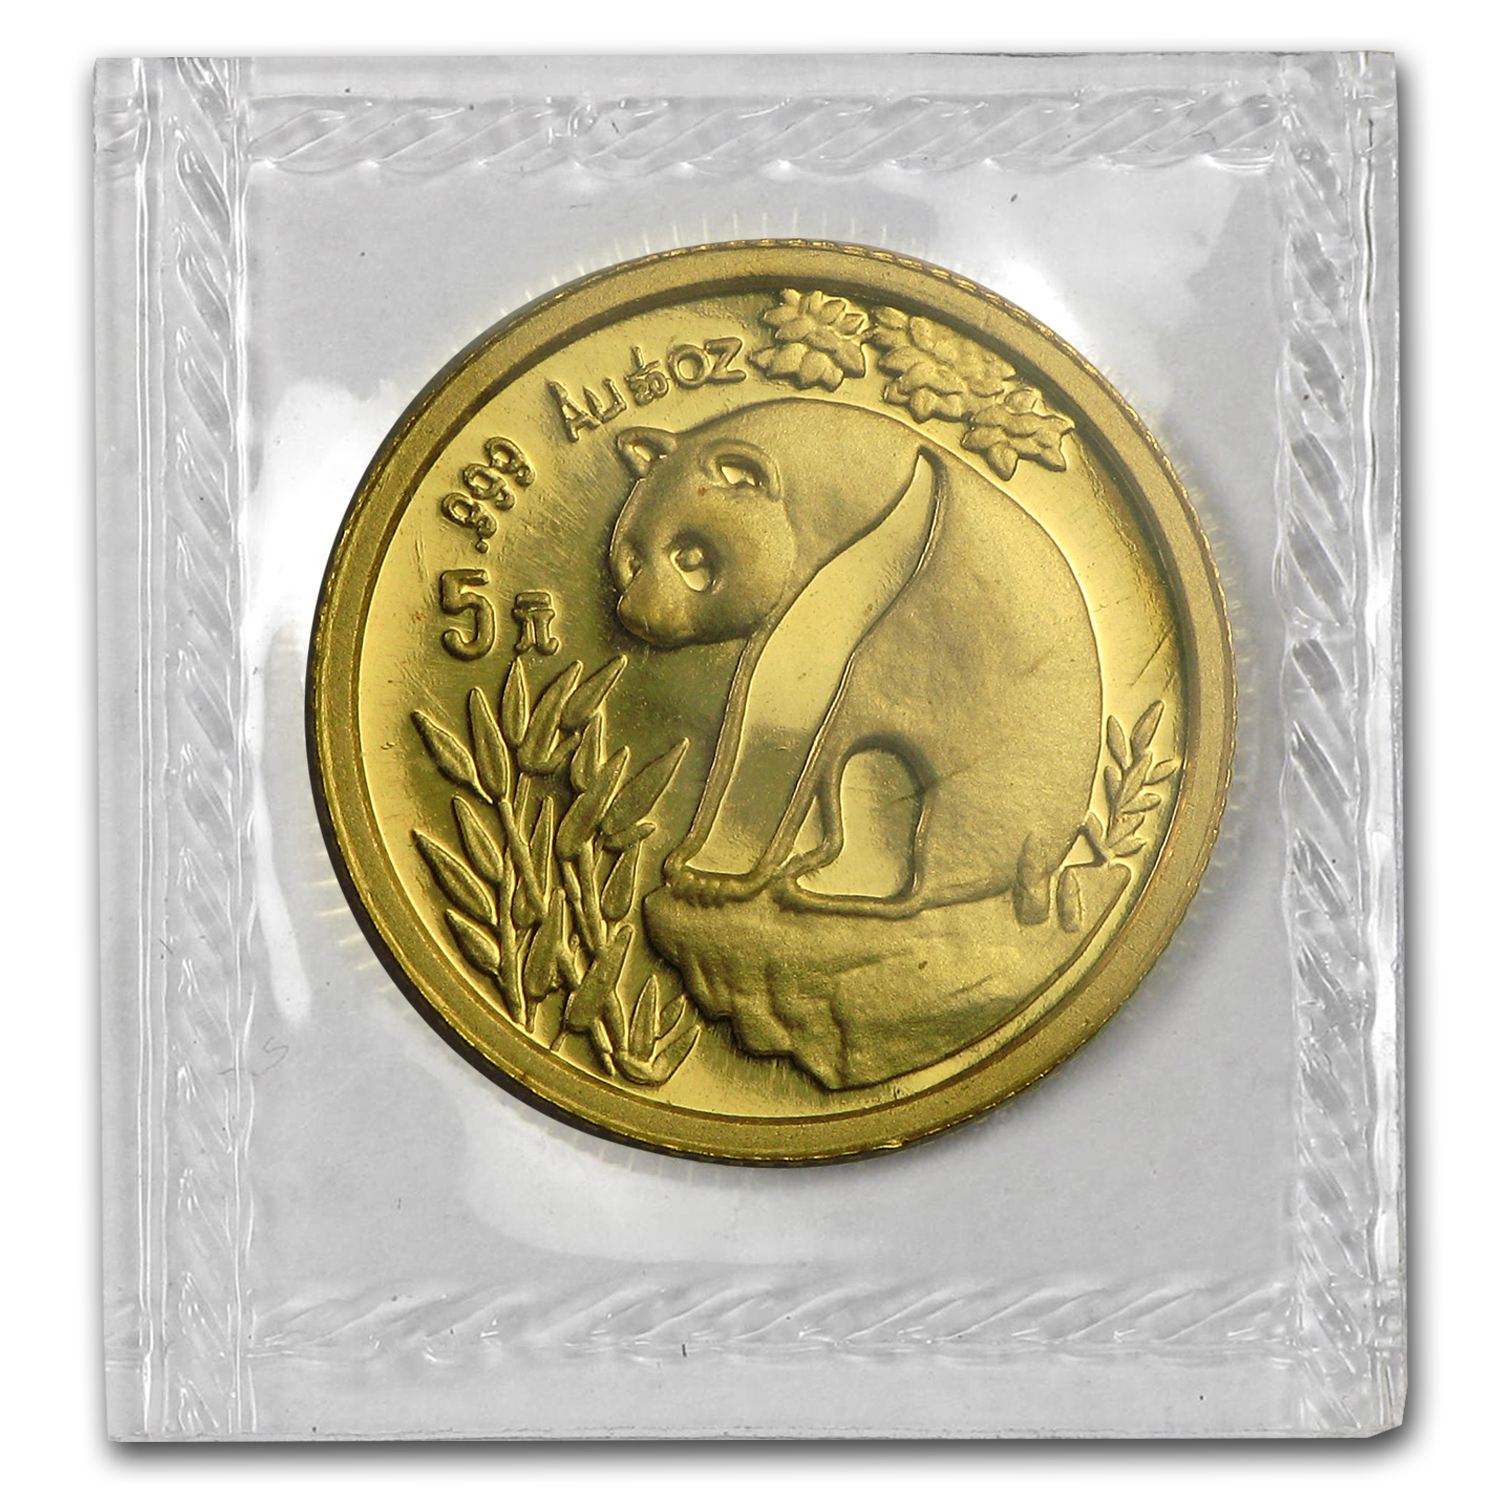 1993 (1/20 oz) Gold Chinese Pandas - Large Date (Sealed)